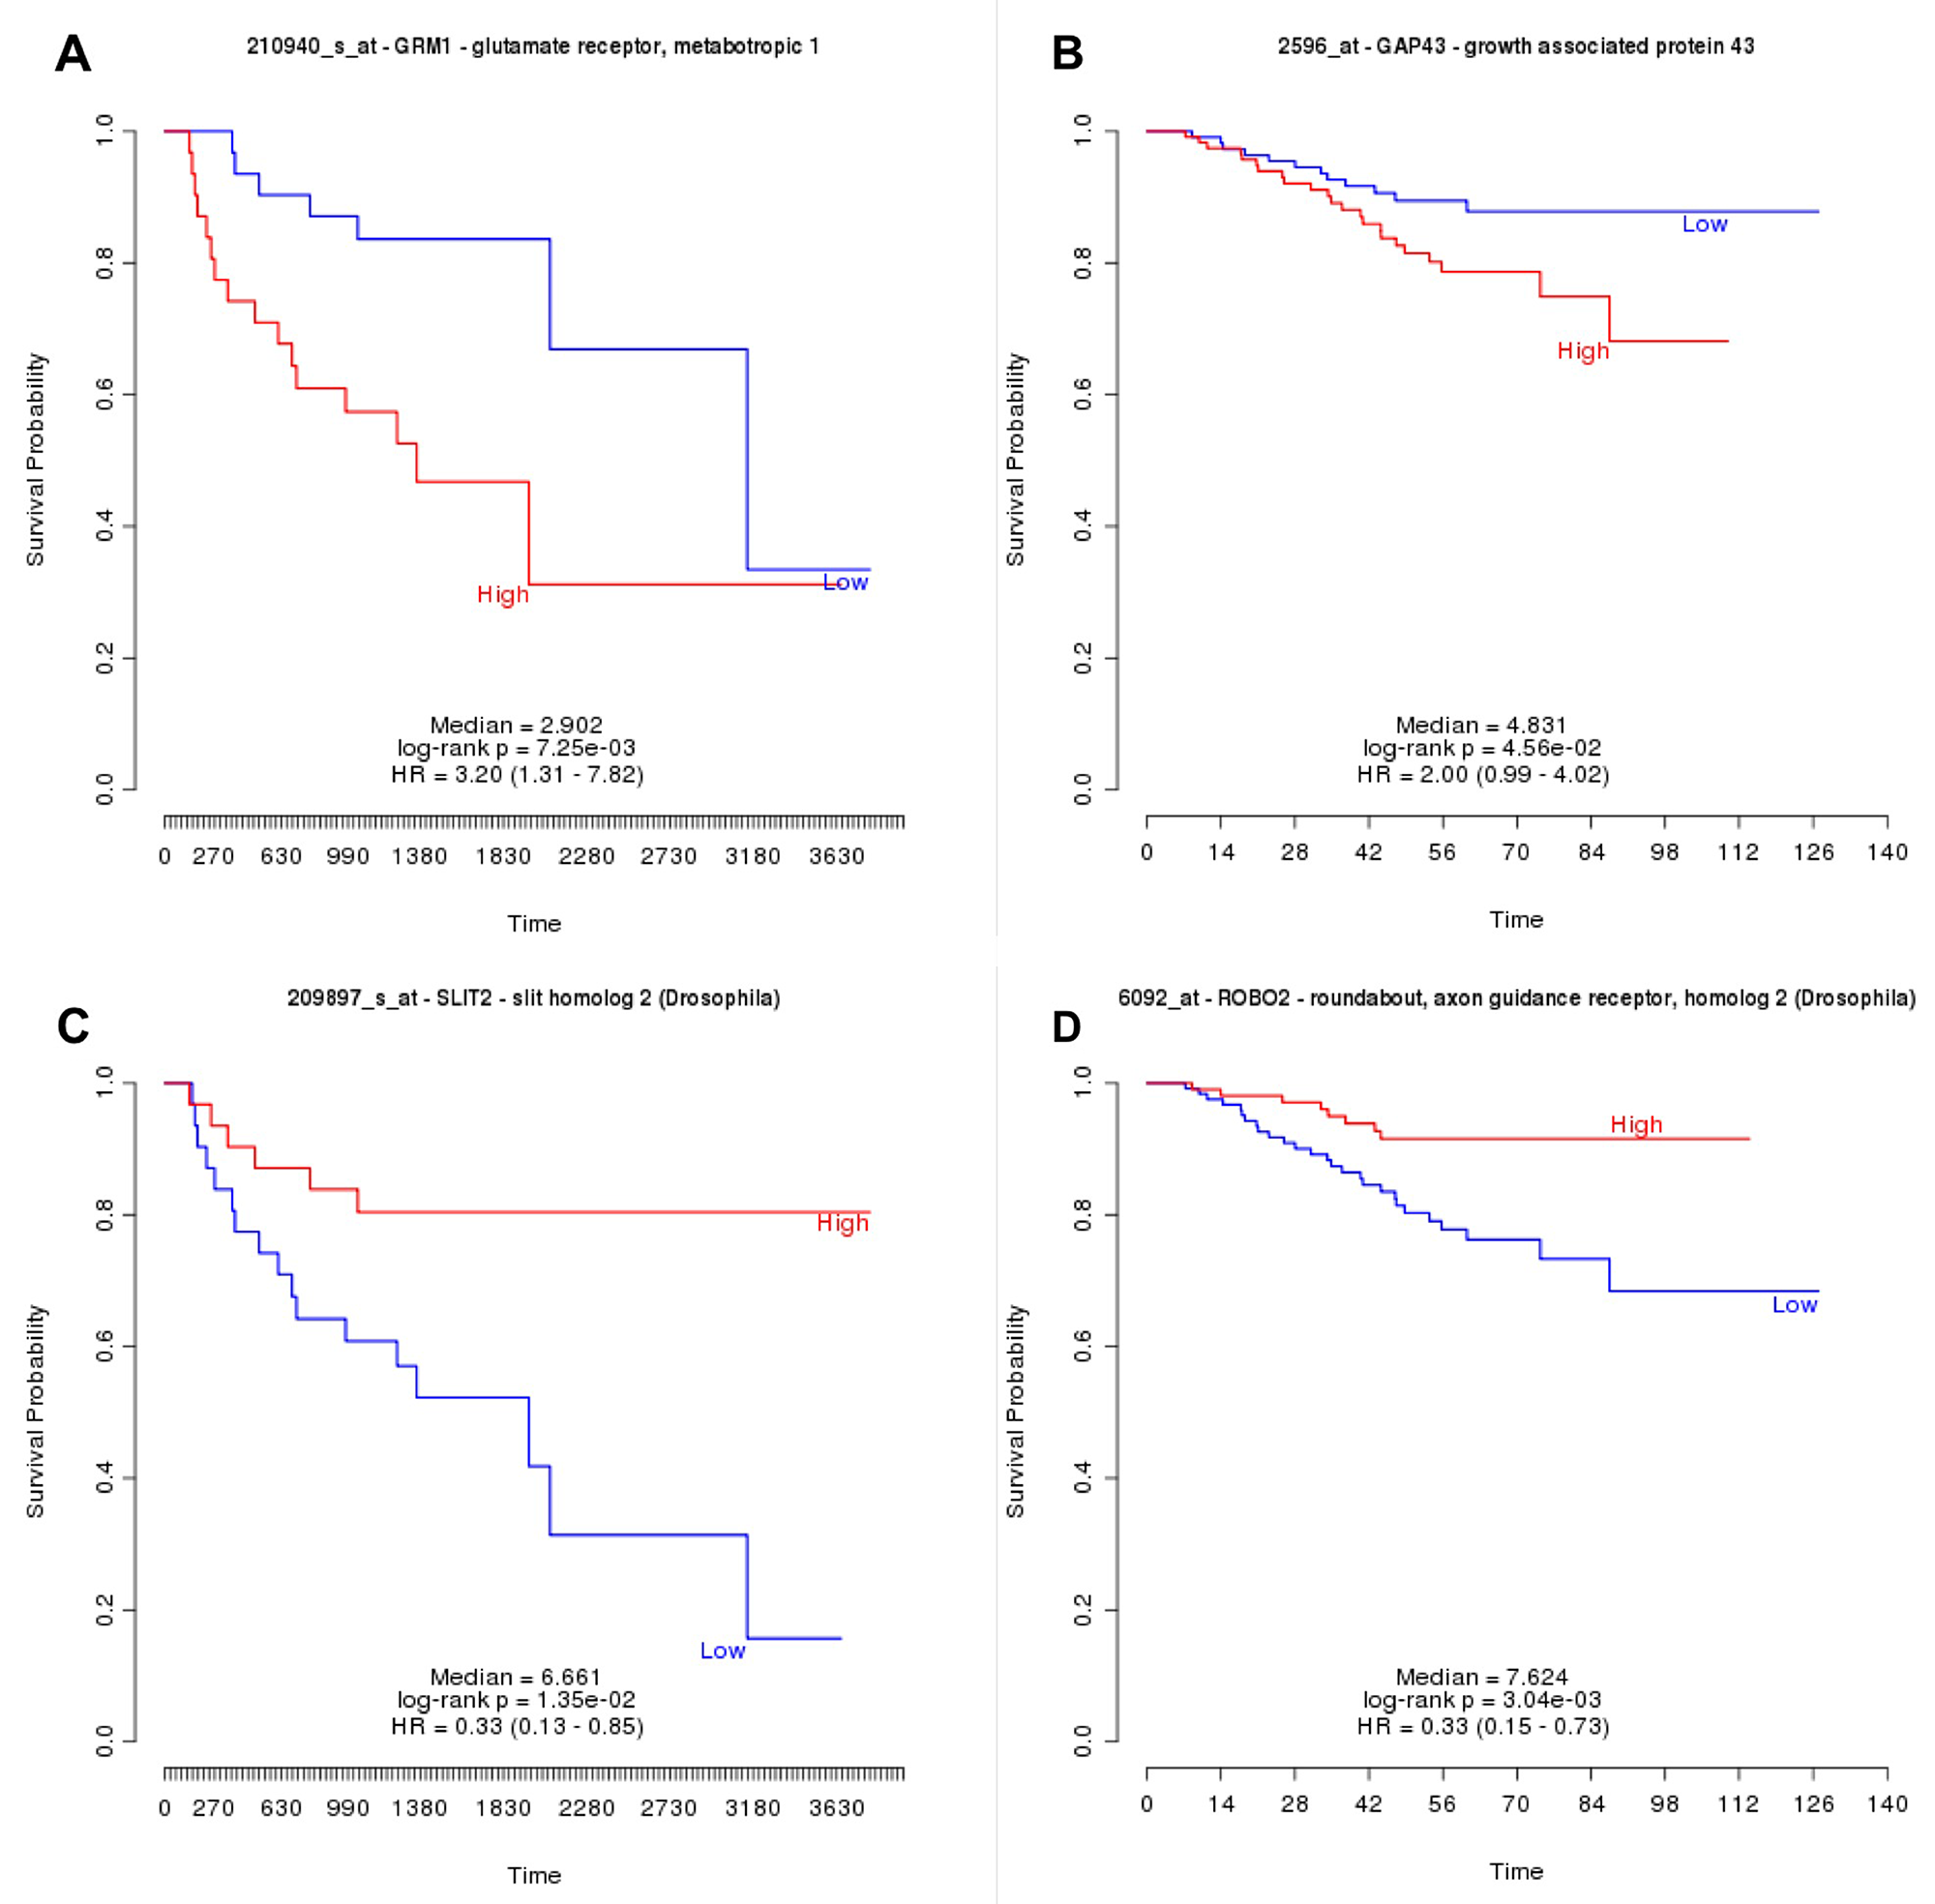 PRECOG Survival analyses in lung adenocarcinoma for Grm1.